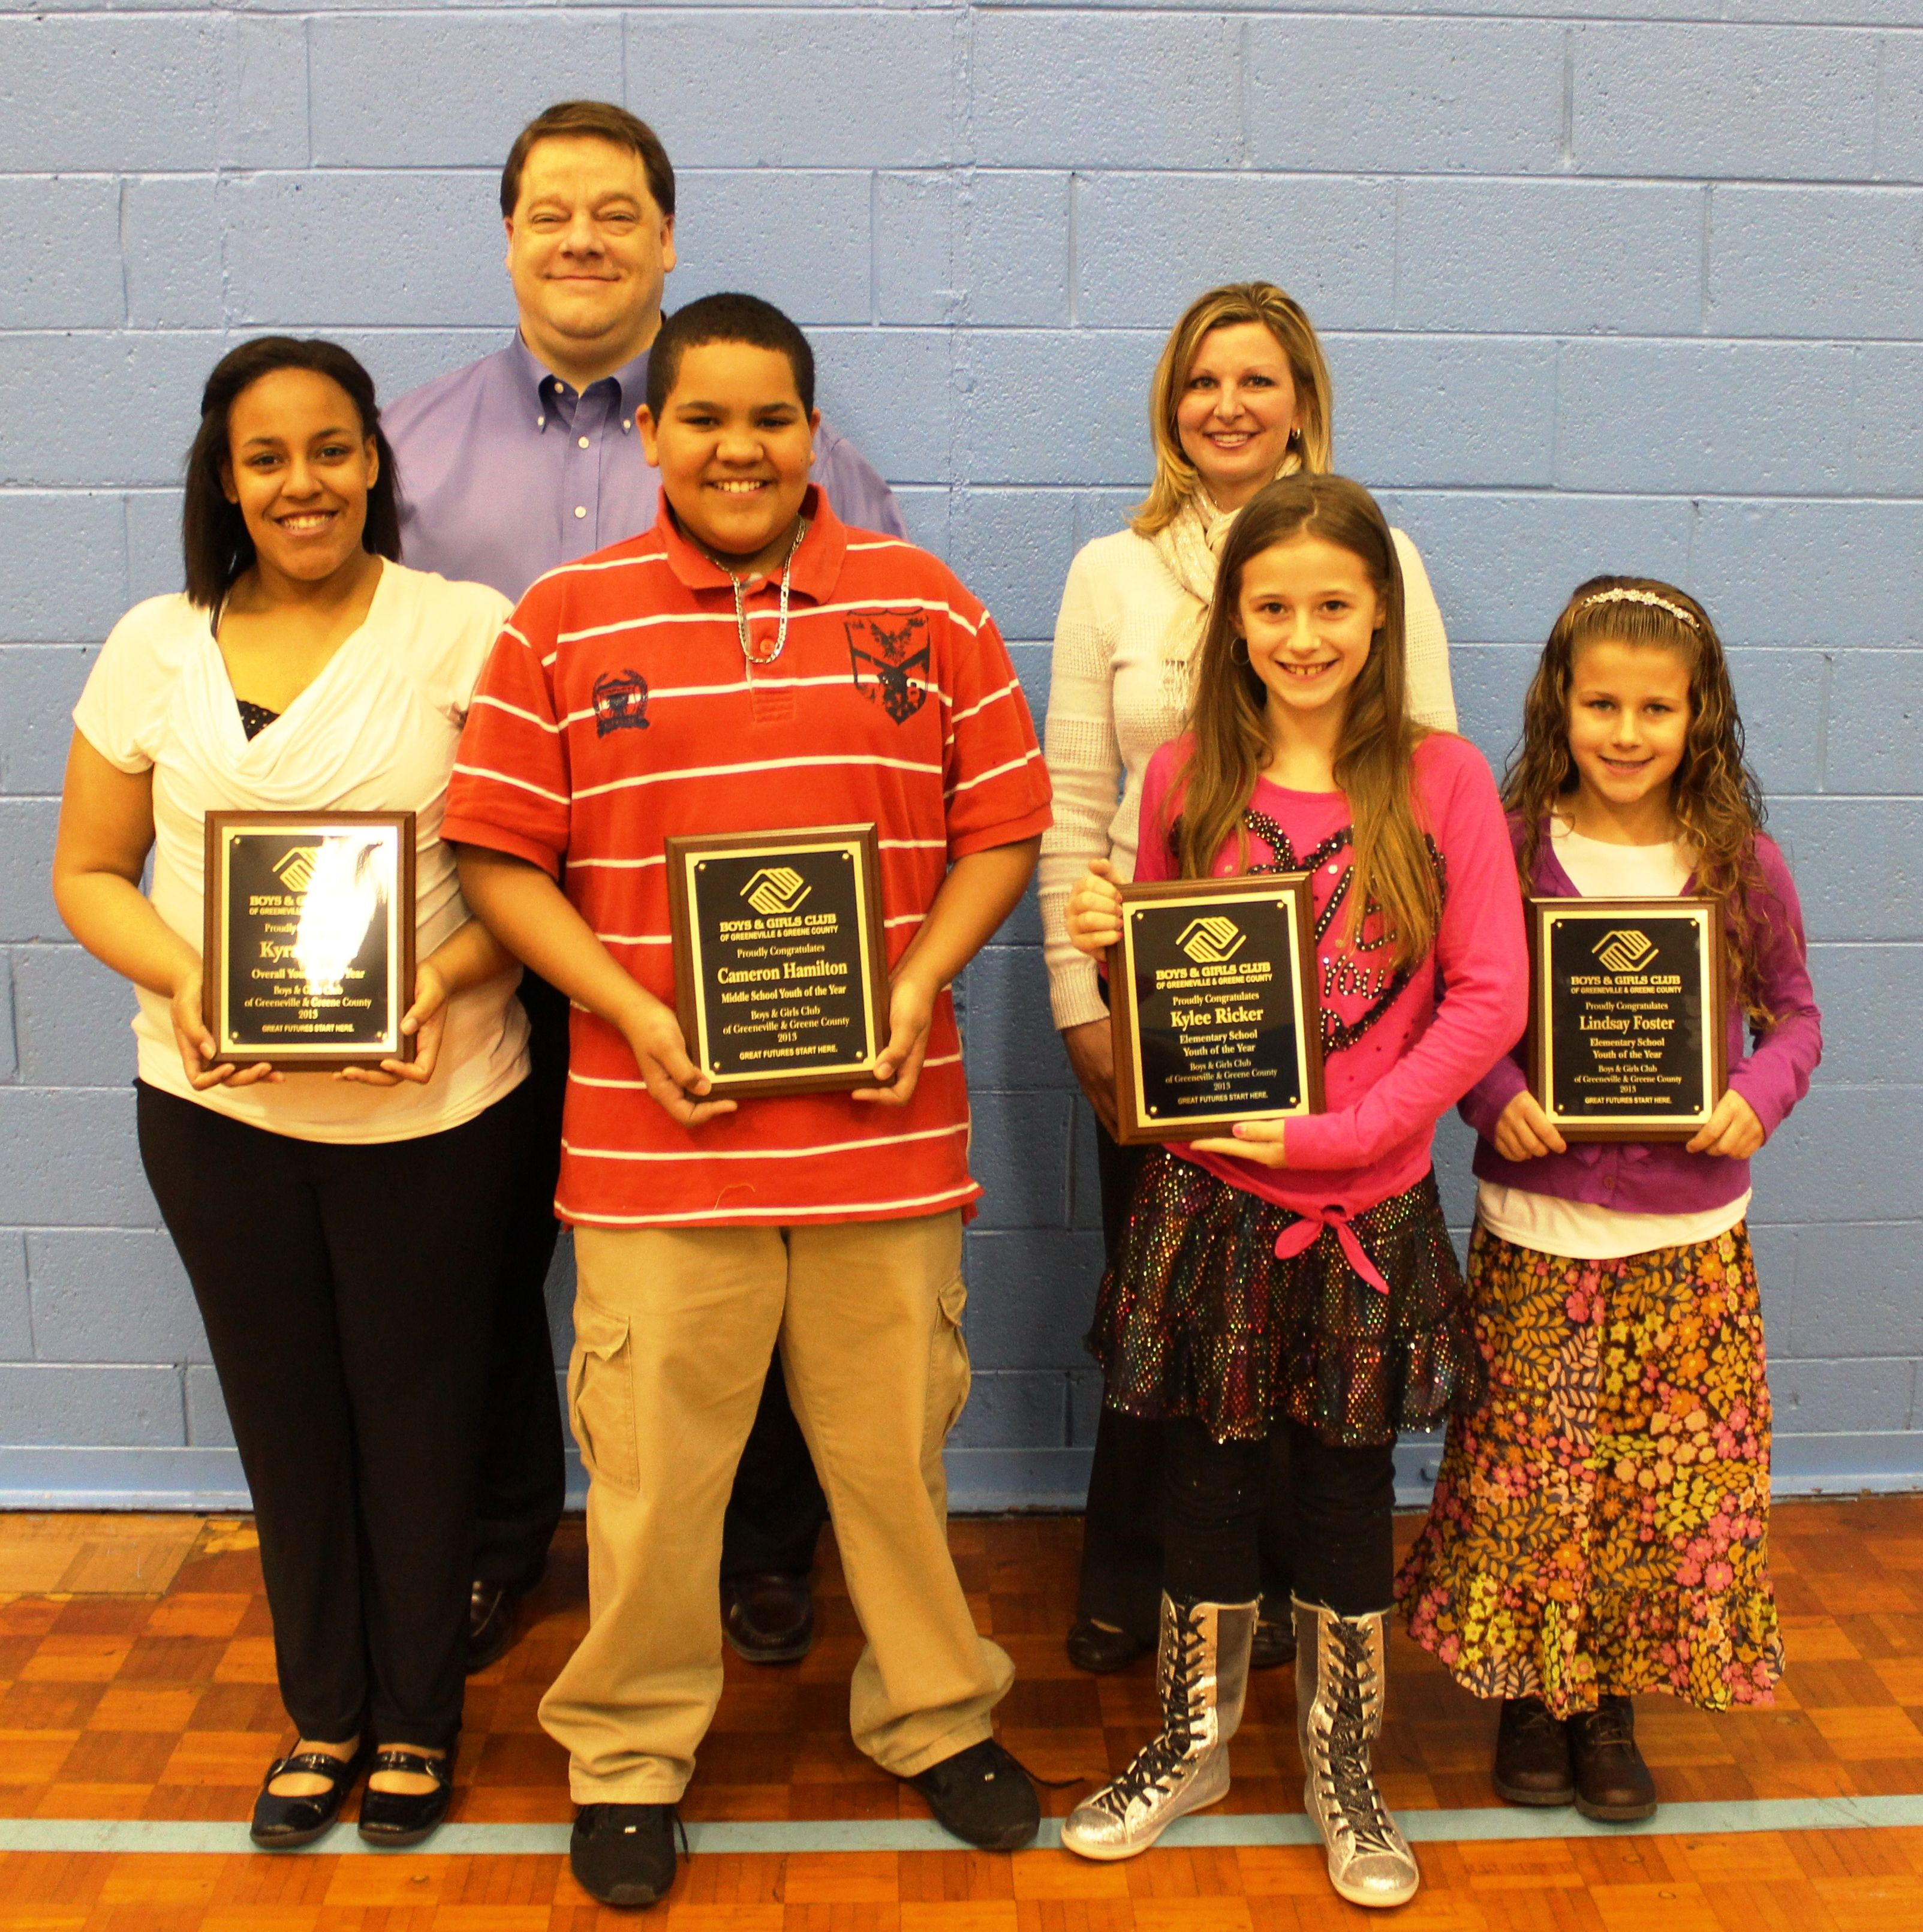 2013 Youth of the Year Winners